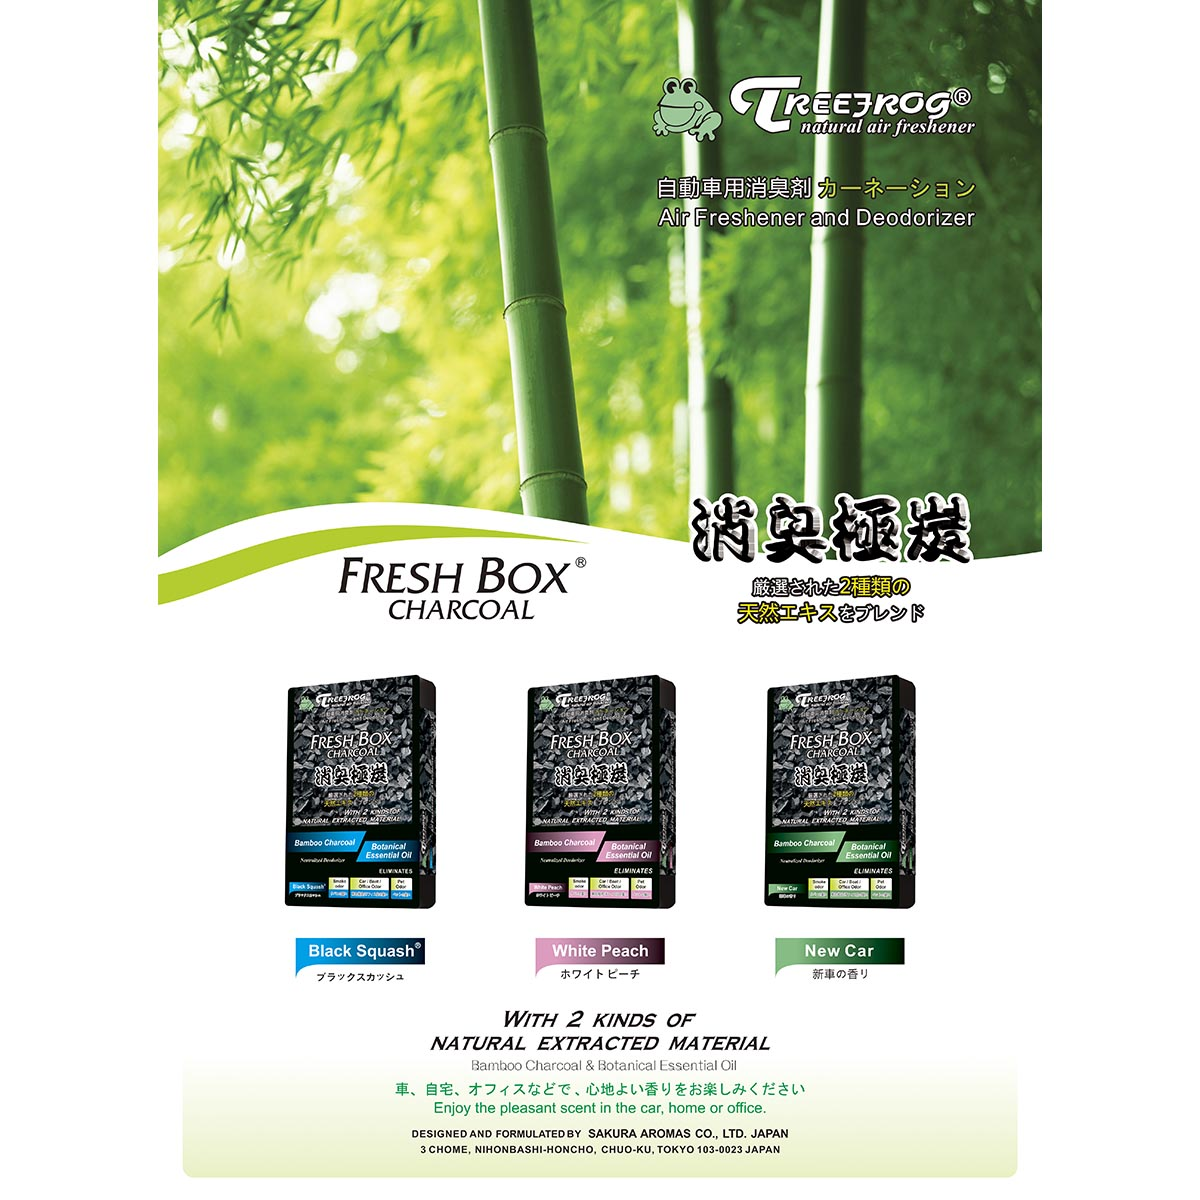 Treefrog Fresh Box Charcoal Wholesale Car Air Fresheners